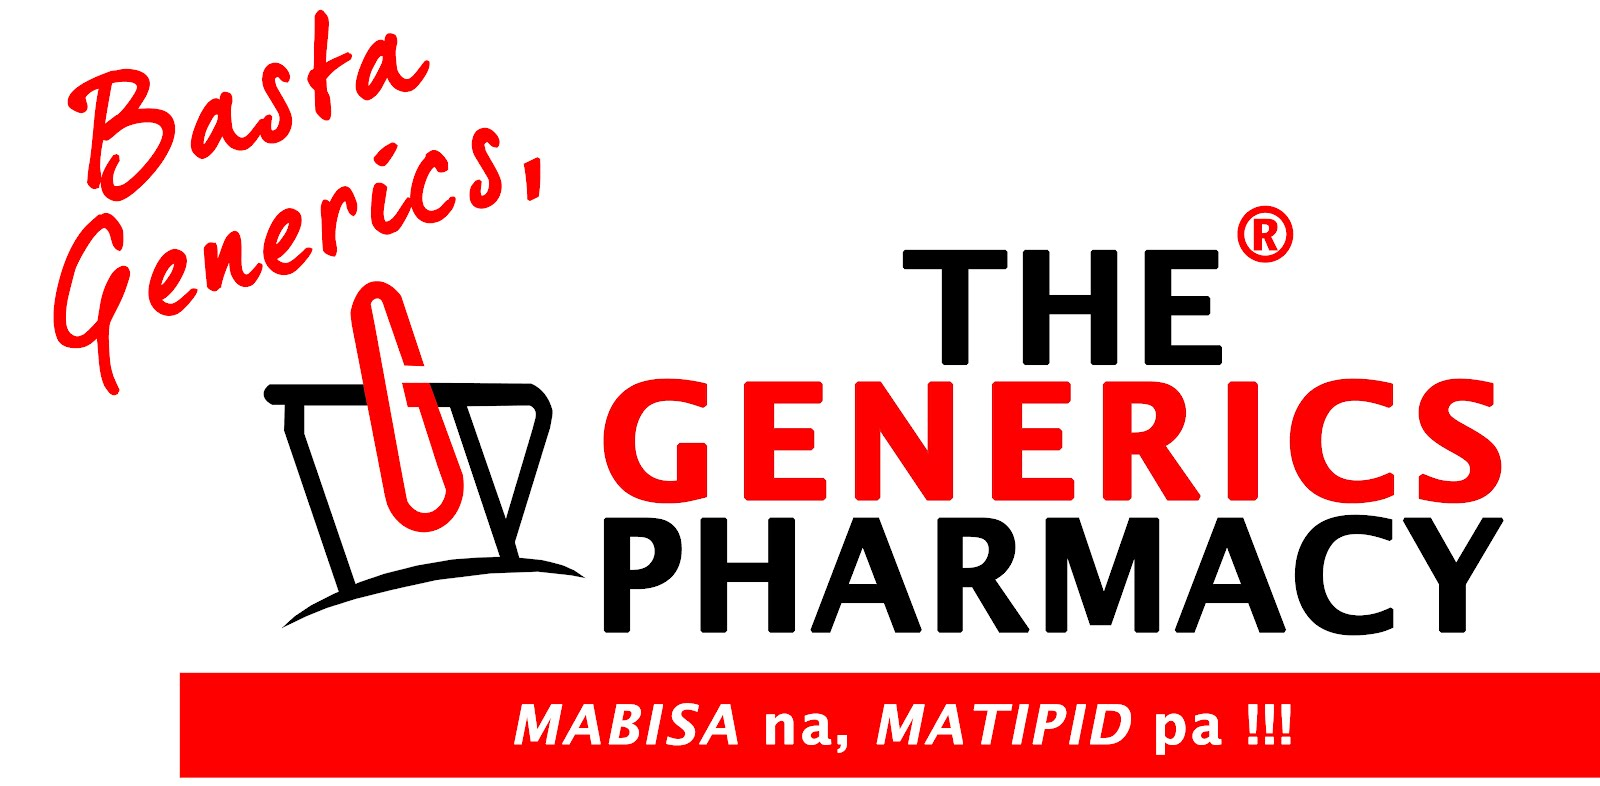 generic drugs Because of the recession, among other reasons, more people are turning to generic drugs, often manufactured abroad is there any cause for concern skip to main content.